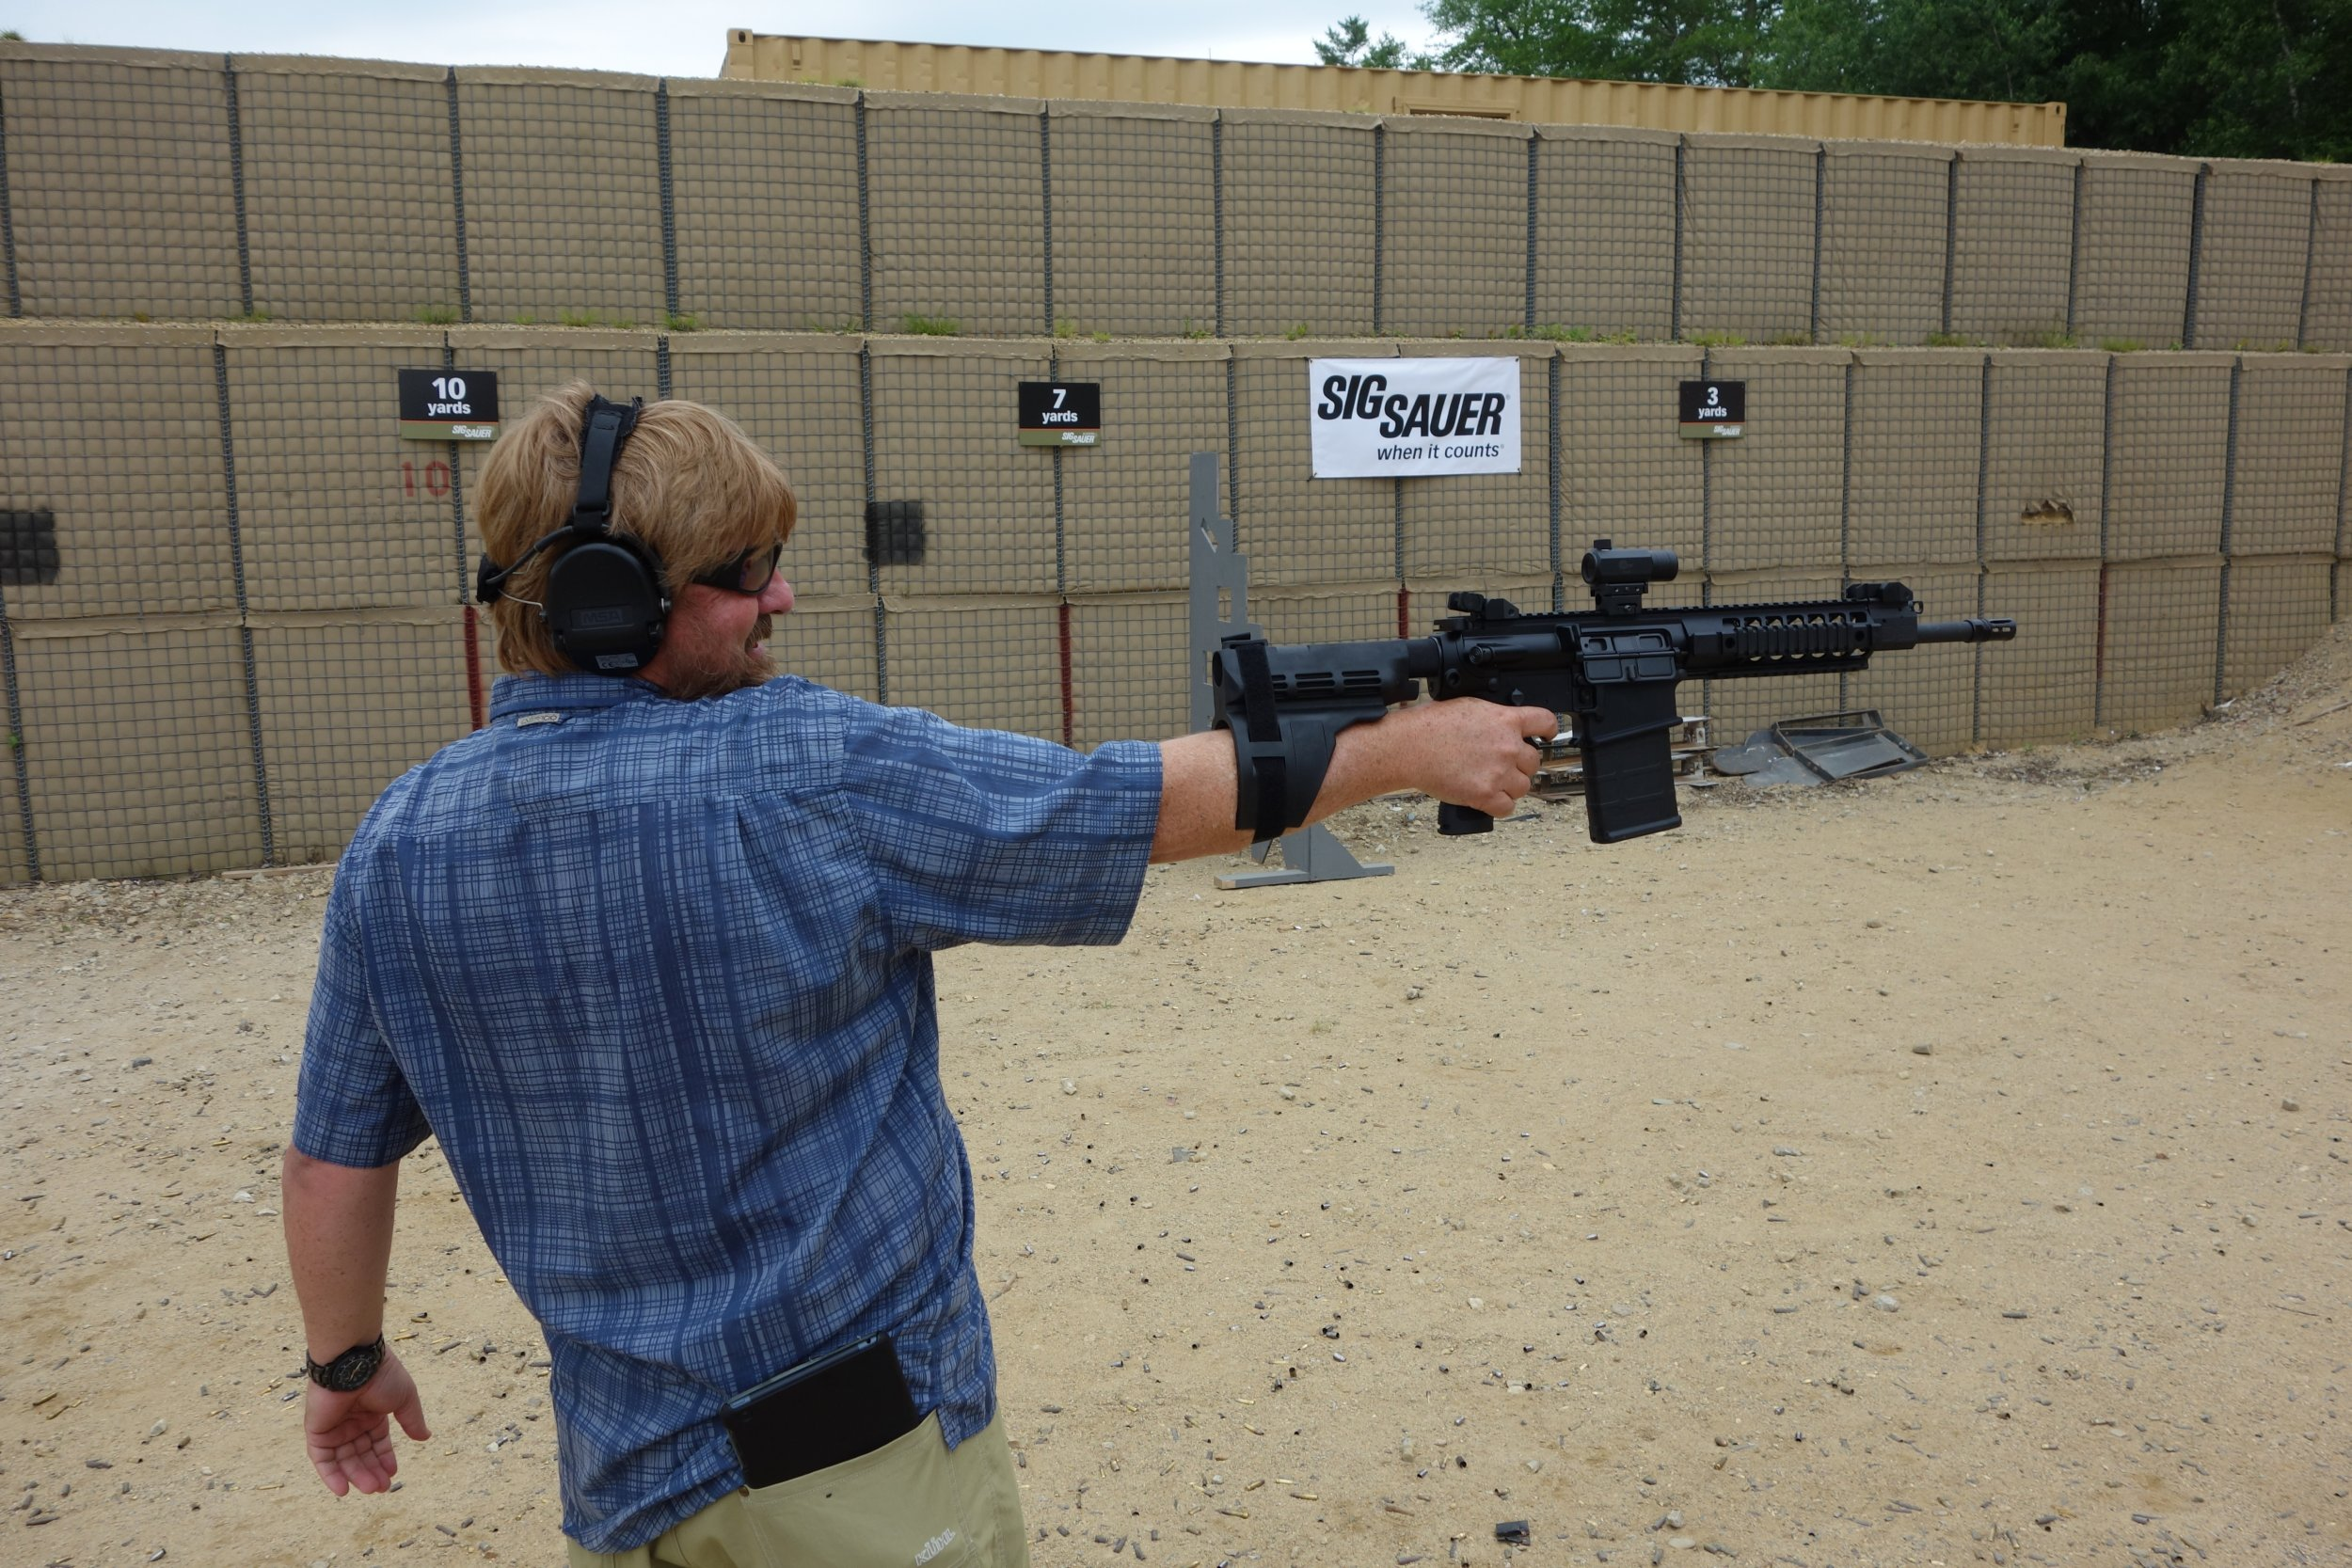 SIG SAUER SIGTac SB15 Pistol Stabilizing Brace on SIG716 7.62mm Tactical Piston AR Carbine SBR Eric Graves Soldier Systems Firing at SIG SAUER Academy Range New Media Writers Event 2014 David Crane DefenseReview.com DR 3 SIG SAUER SIGTac SB15 Pistol Stabilizing Brace for One Handed Firing of Tactical AR 15 Pistols